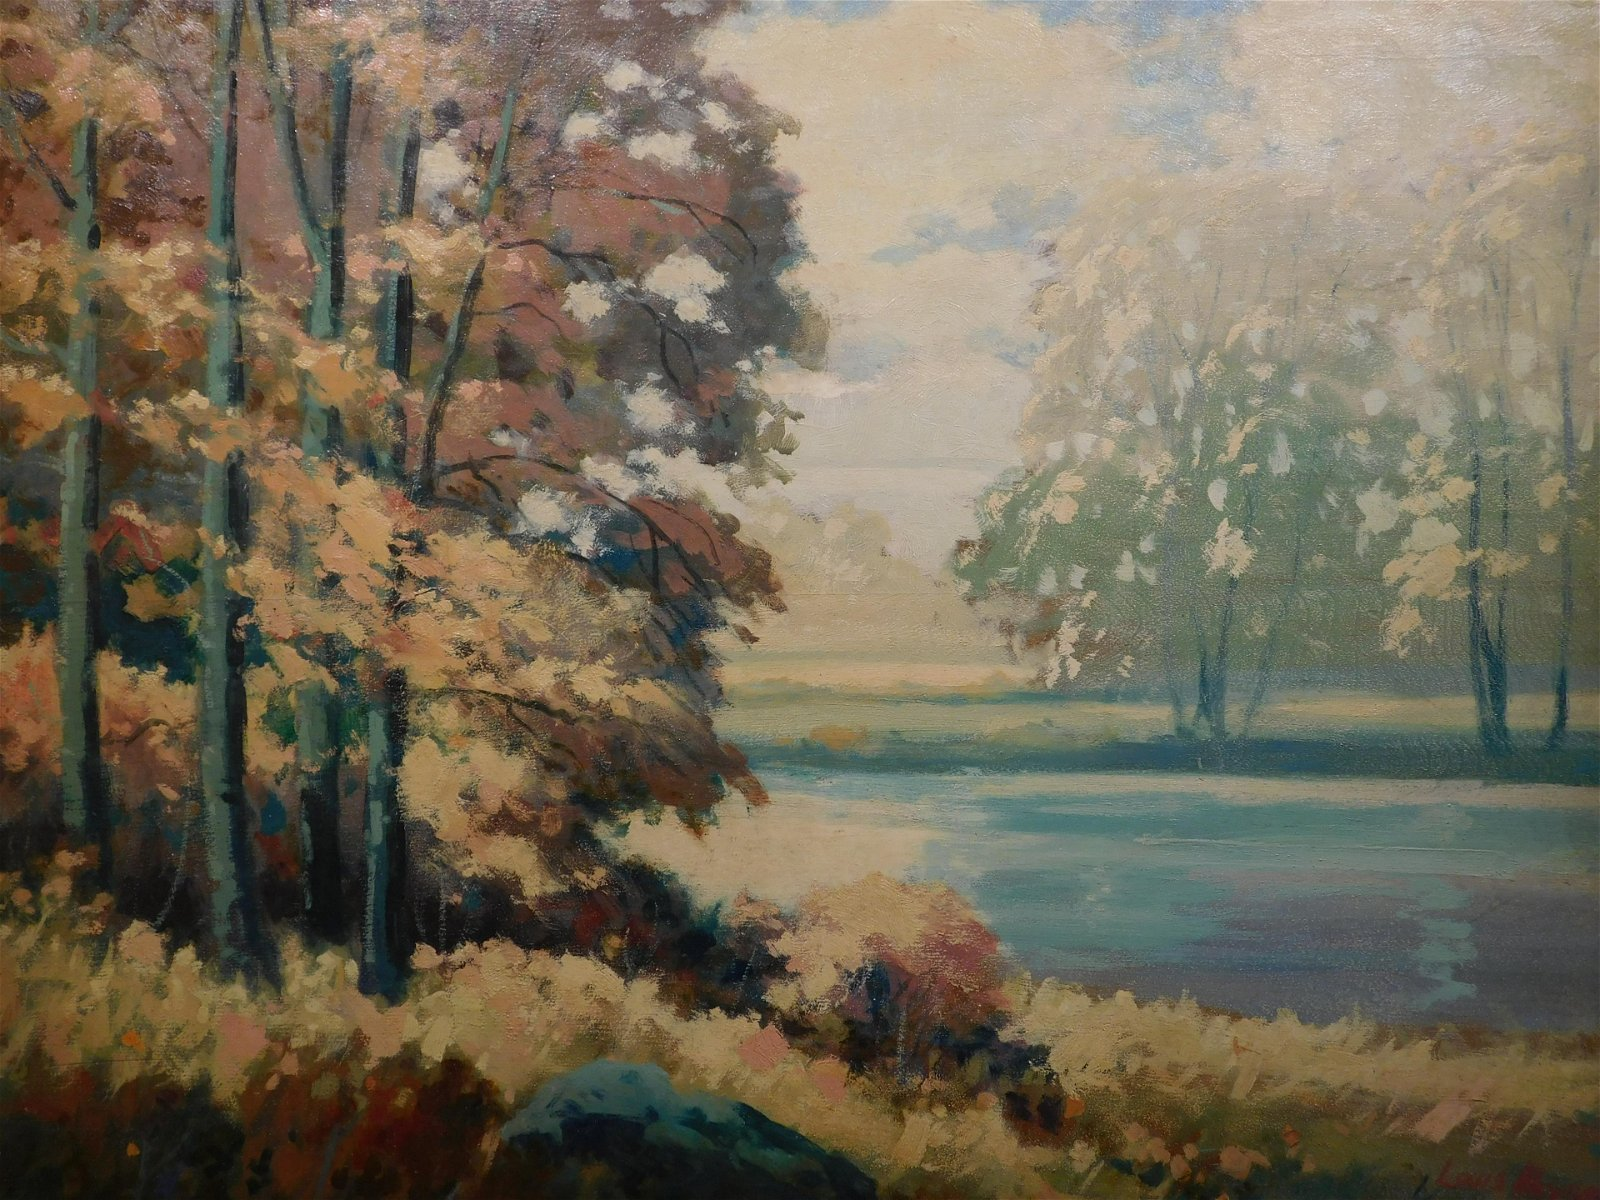 Louis Meynell: Landscape Painting